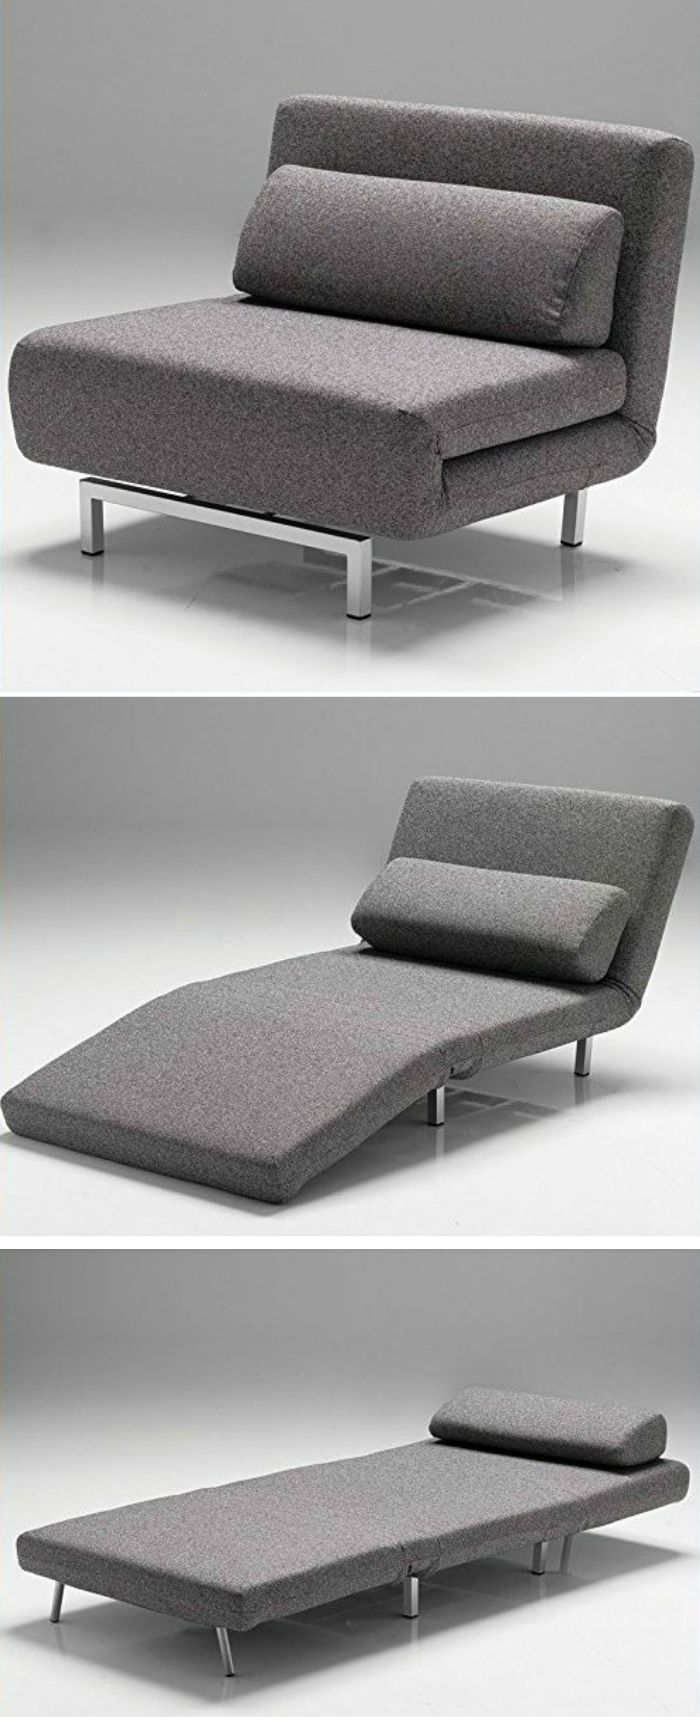 Ten Sleeper Chairs That Turn Any Space Into A Guest Room In A Snap Living Sleeper Chair Guest Room Chairs Simple Bed Chairs that turn into twin beds